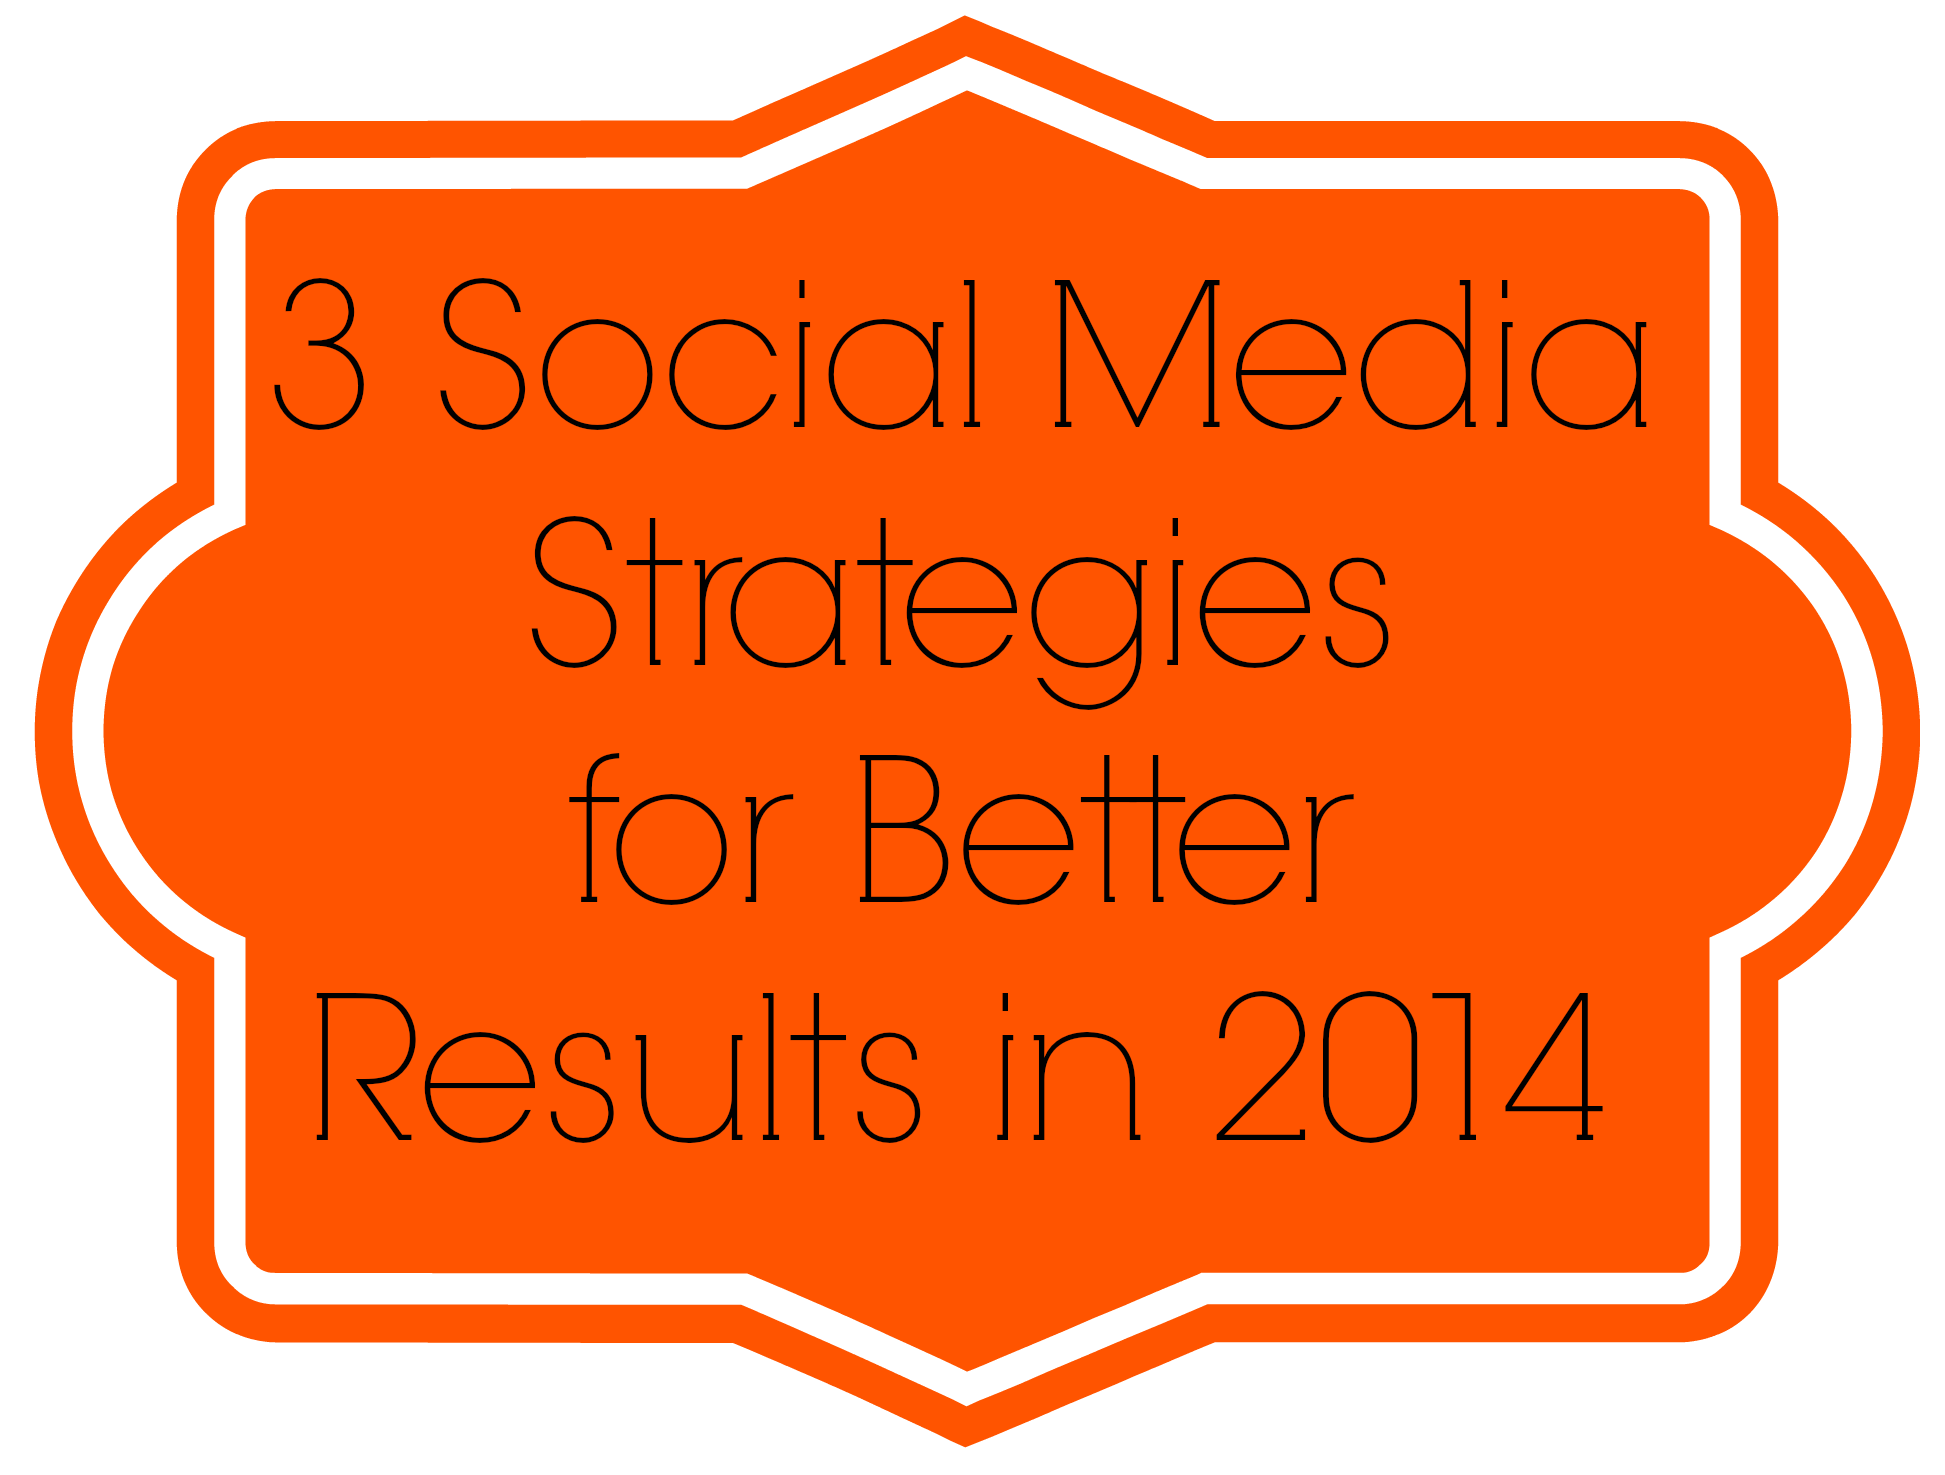 Get better social media results in 2014: 3 strategies that will up your game